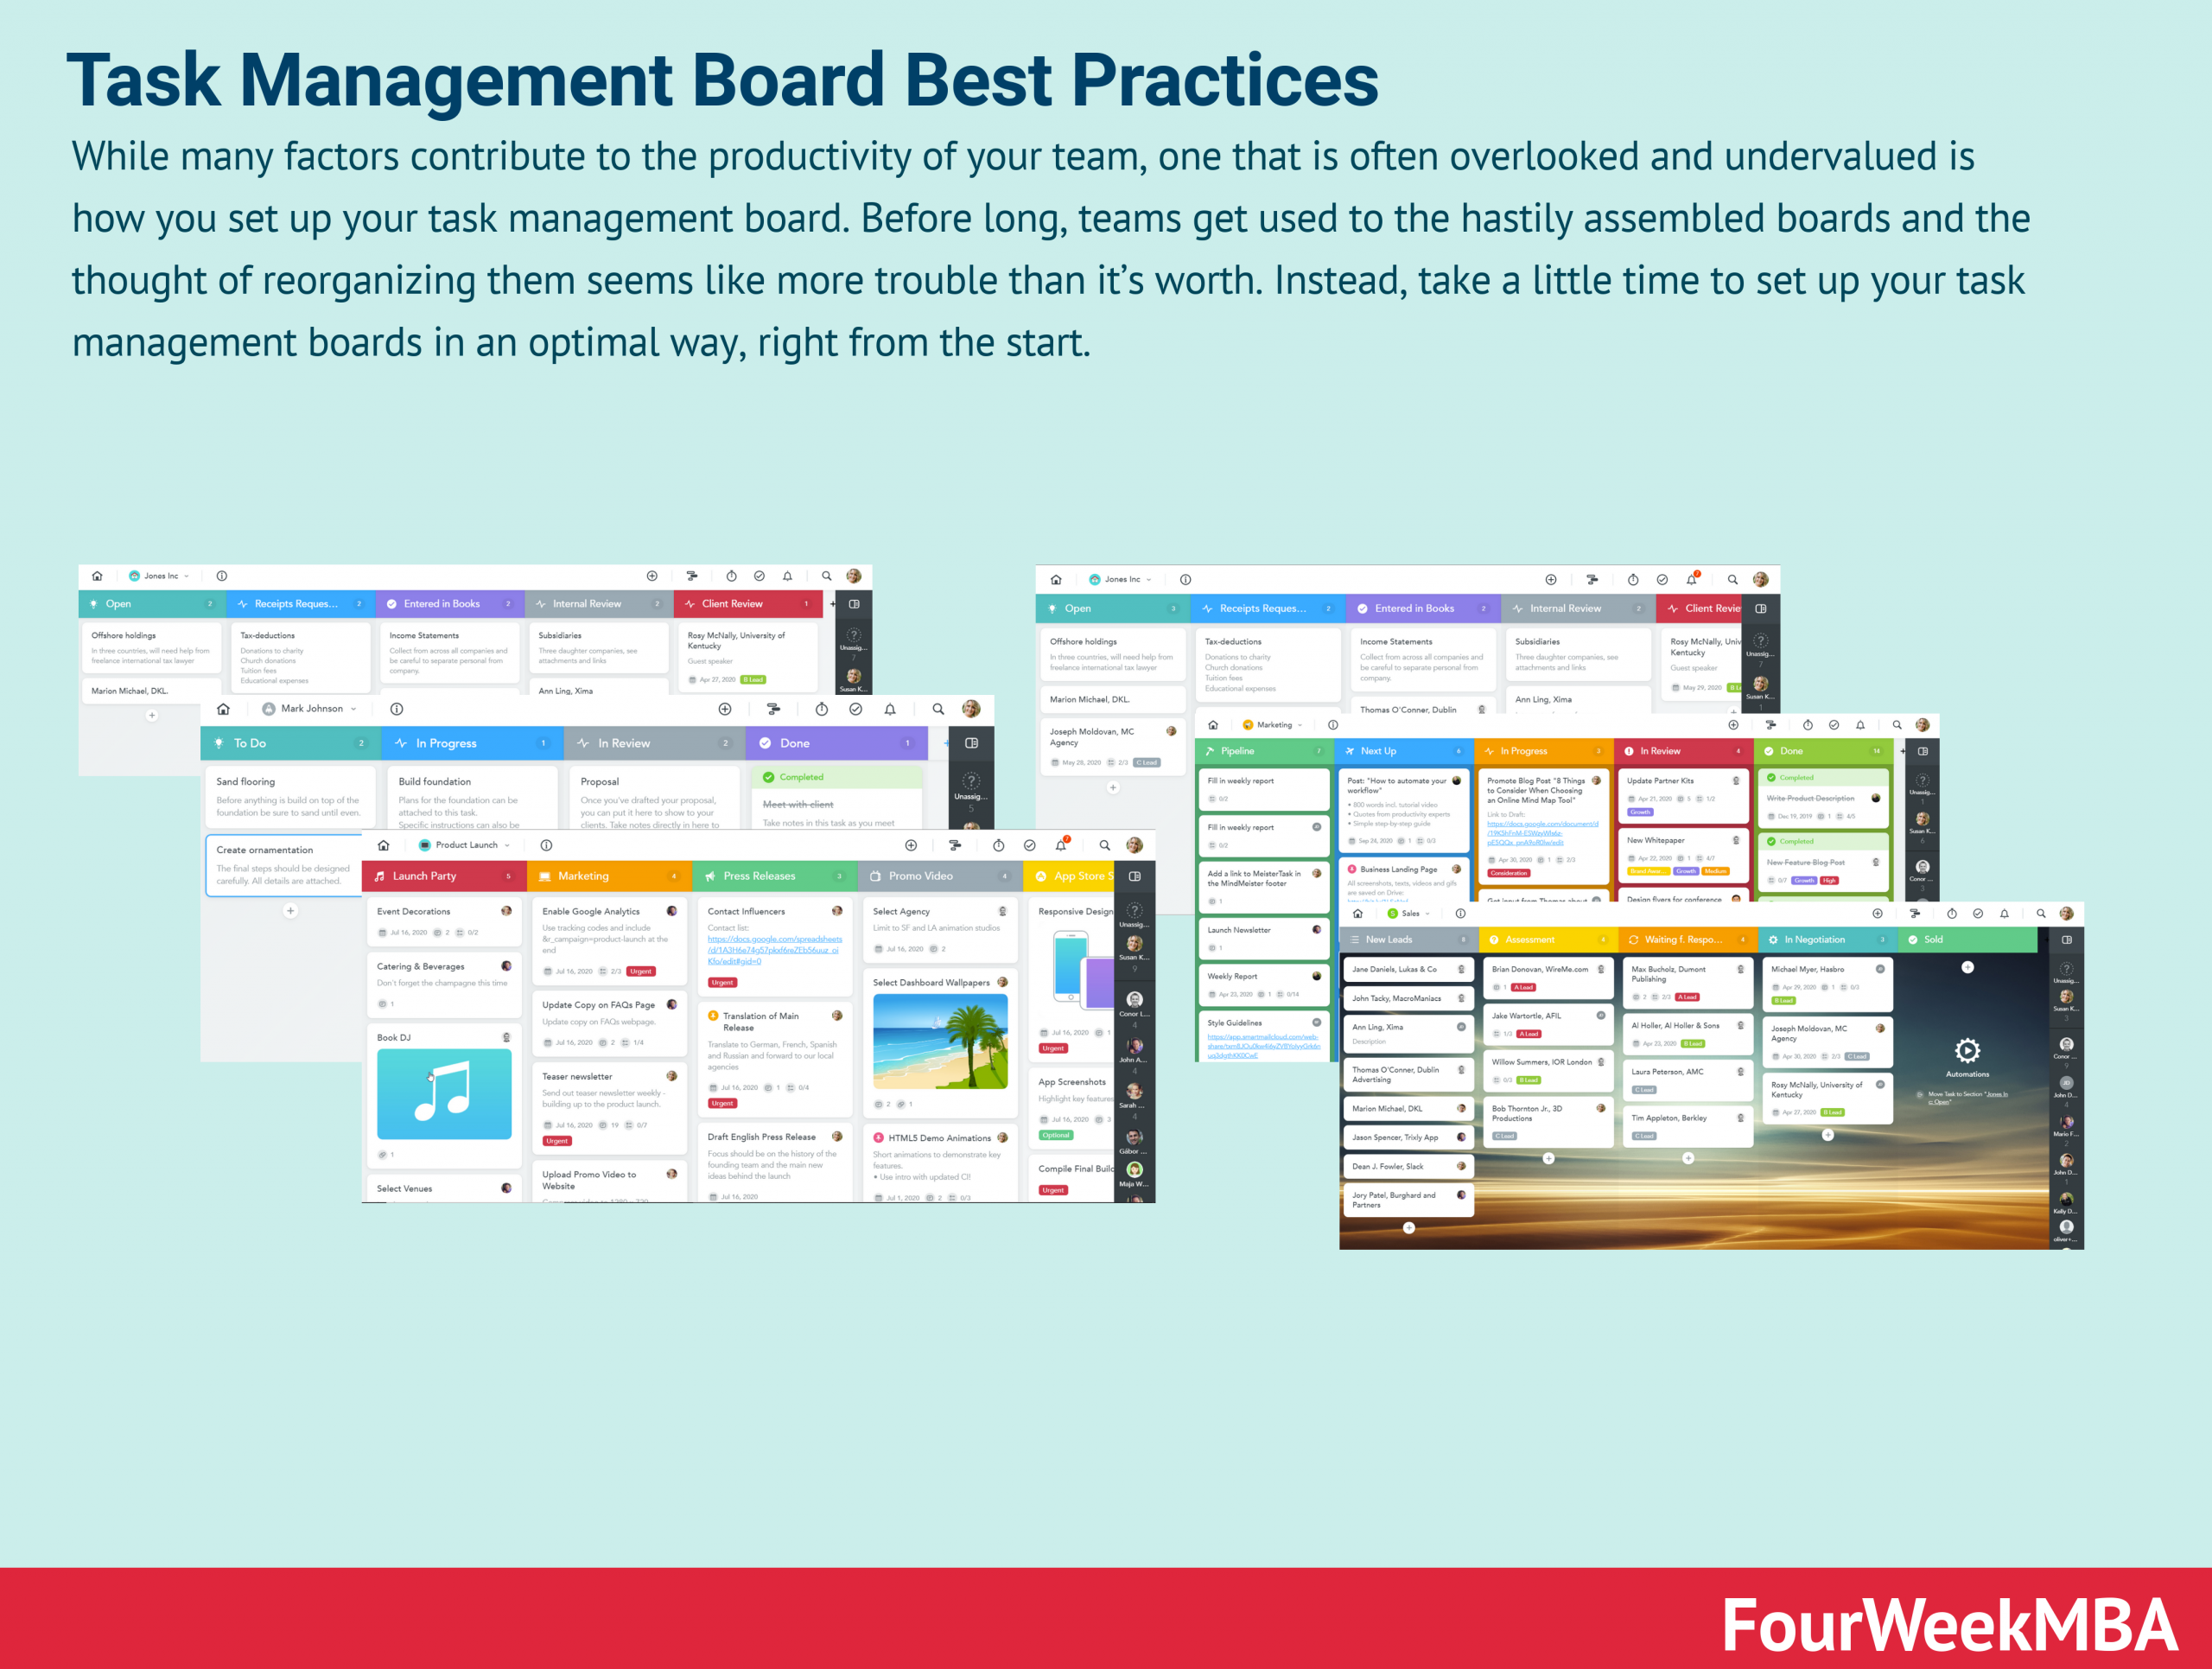 Finding the Right Task Management Board Setup for Team Productivity